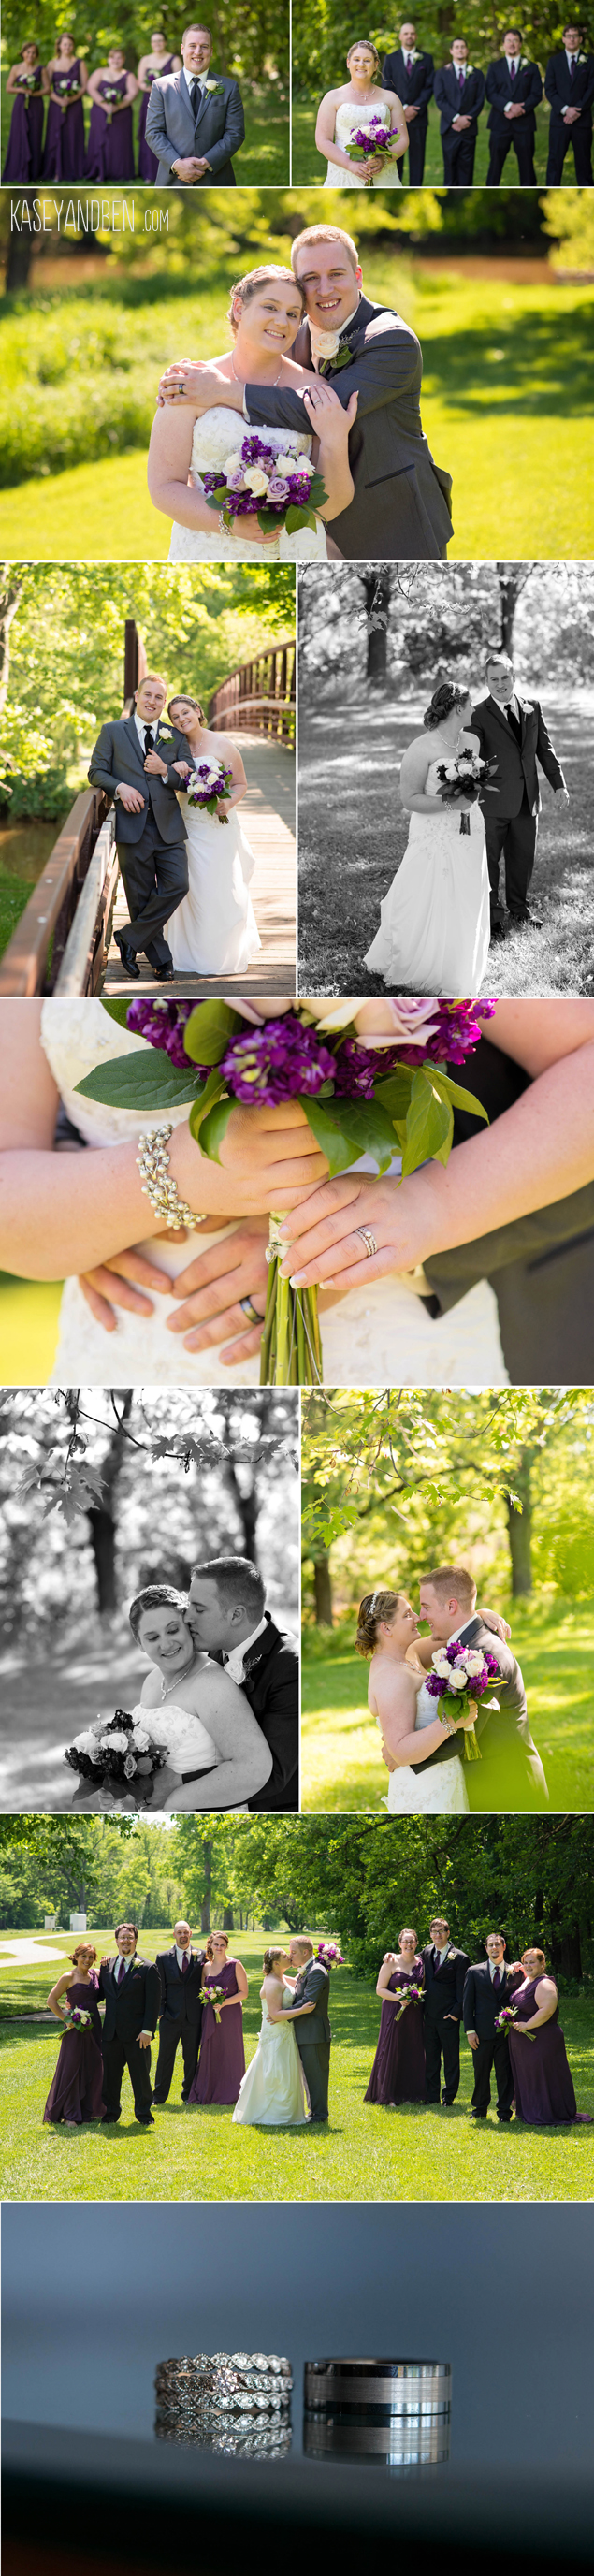 Wedding_Green_Bay_Pamperin_Park_Summer_Bride_Spring2